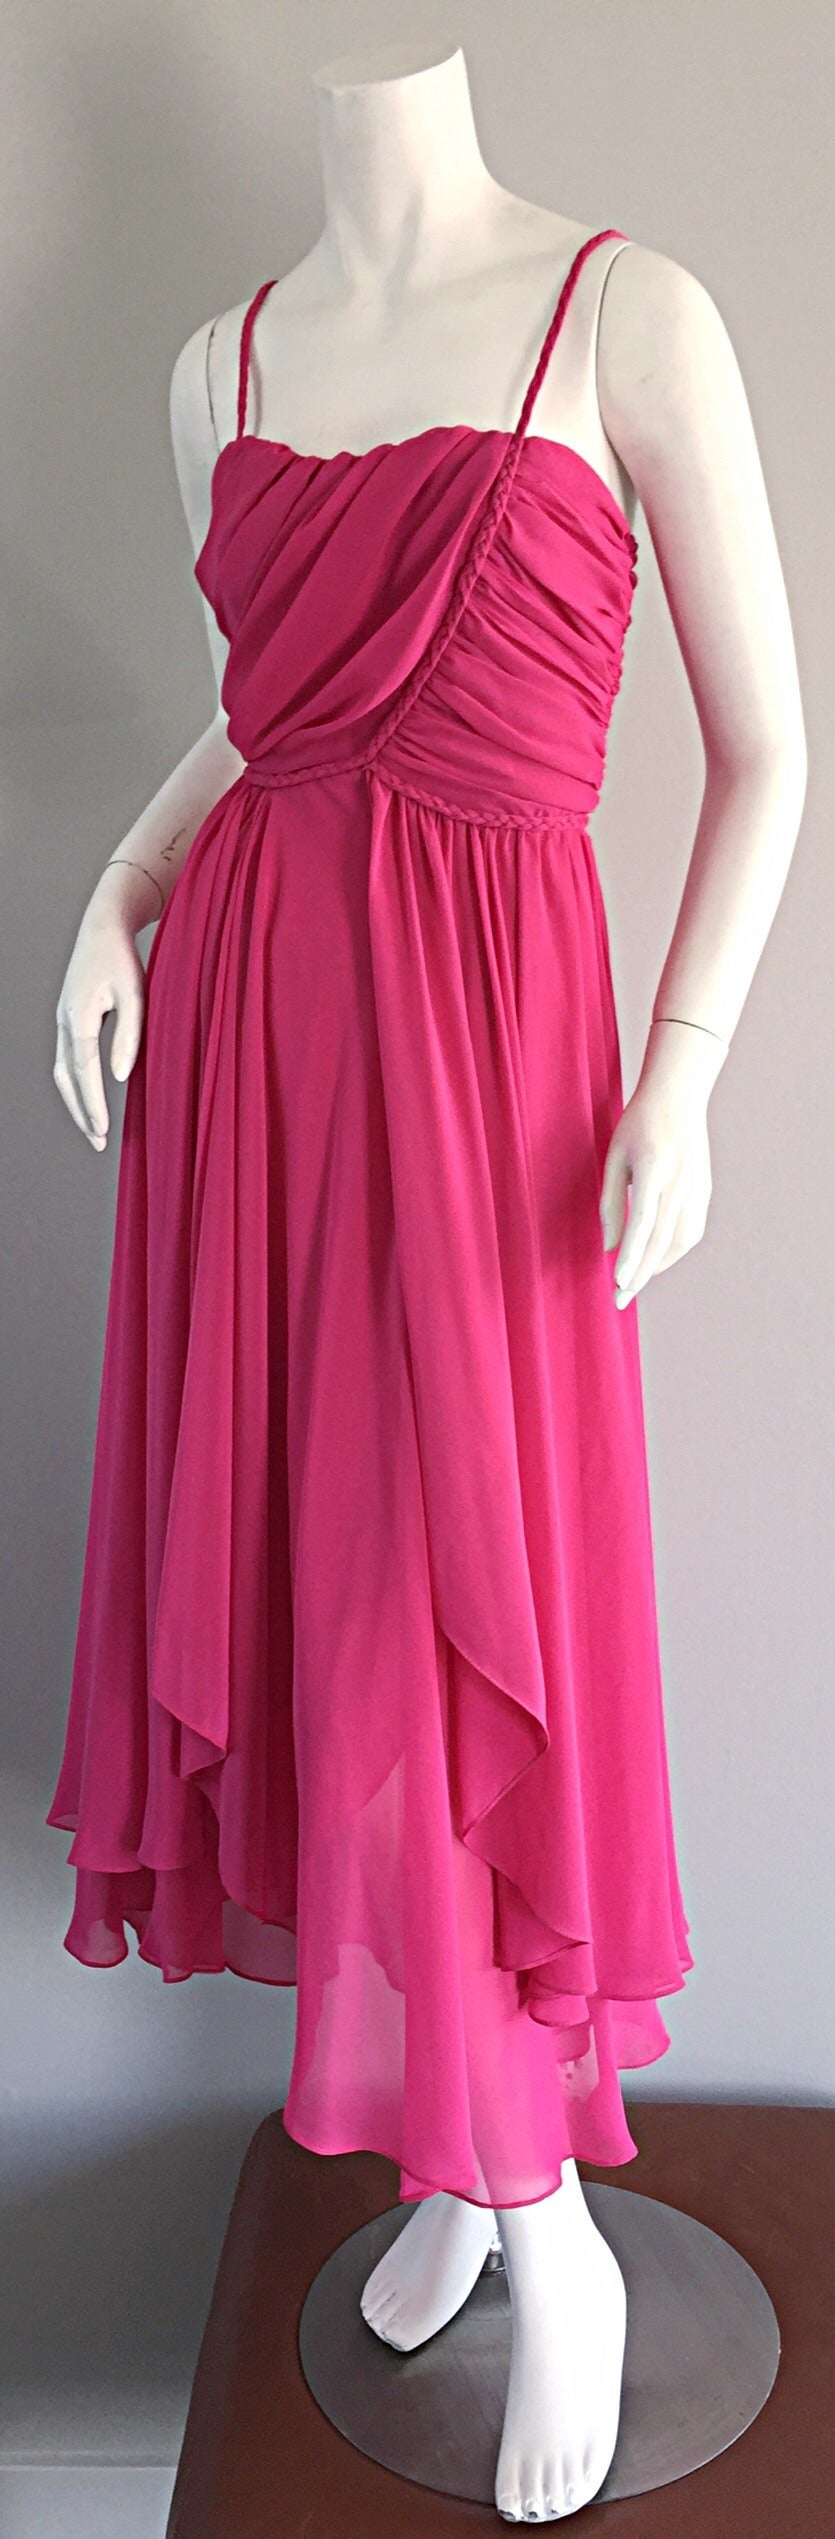 1970s Joy Stevens Hot Pink Vintage Flowy Grecian Disco Dress w/ Braided Details 6